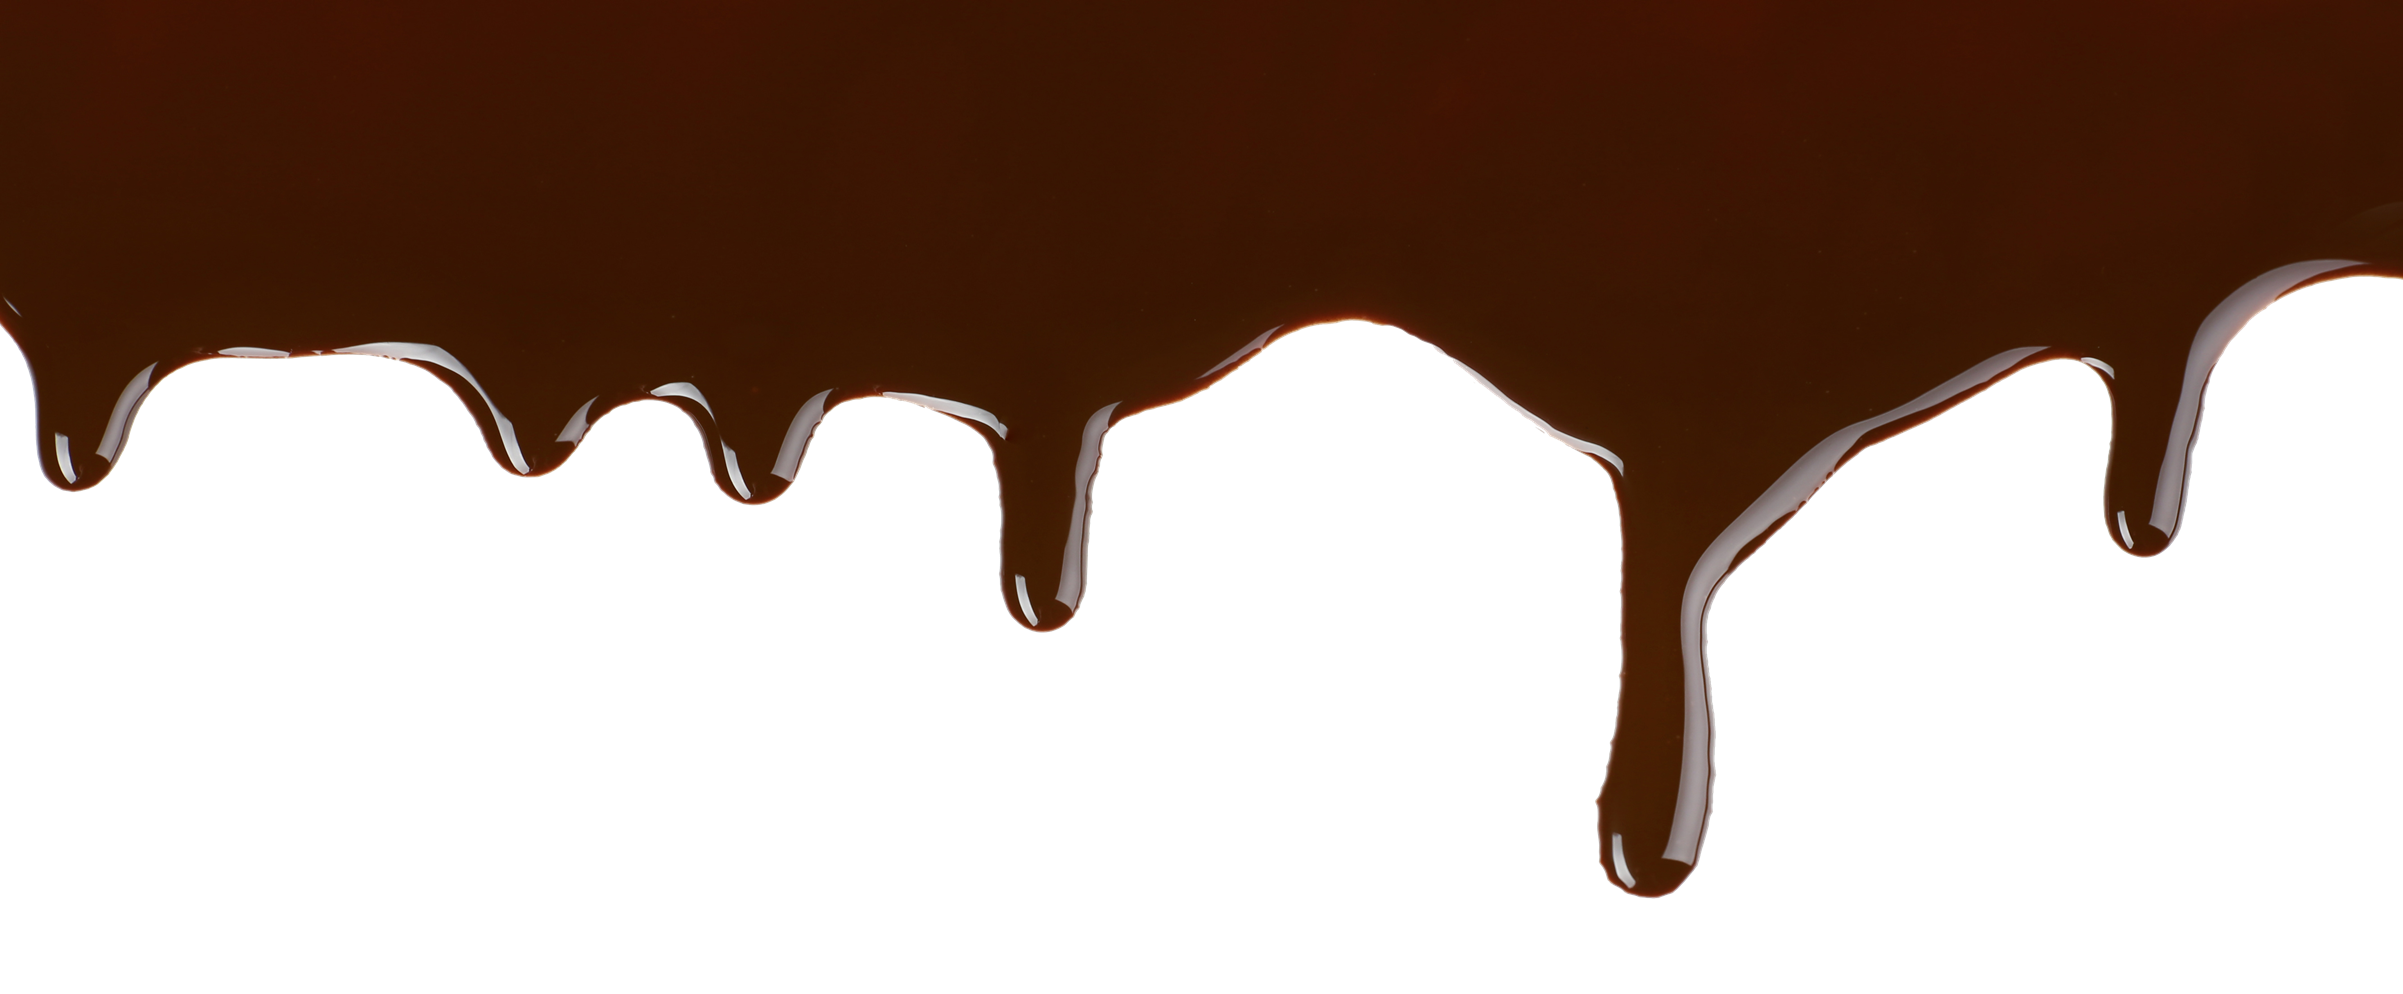 PNG File Name: Melted Chocolate PlusPng.com  - Chocolate PNG